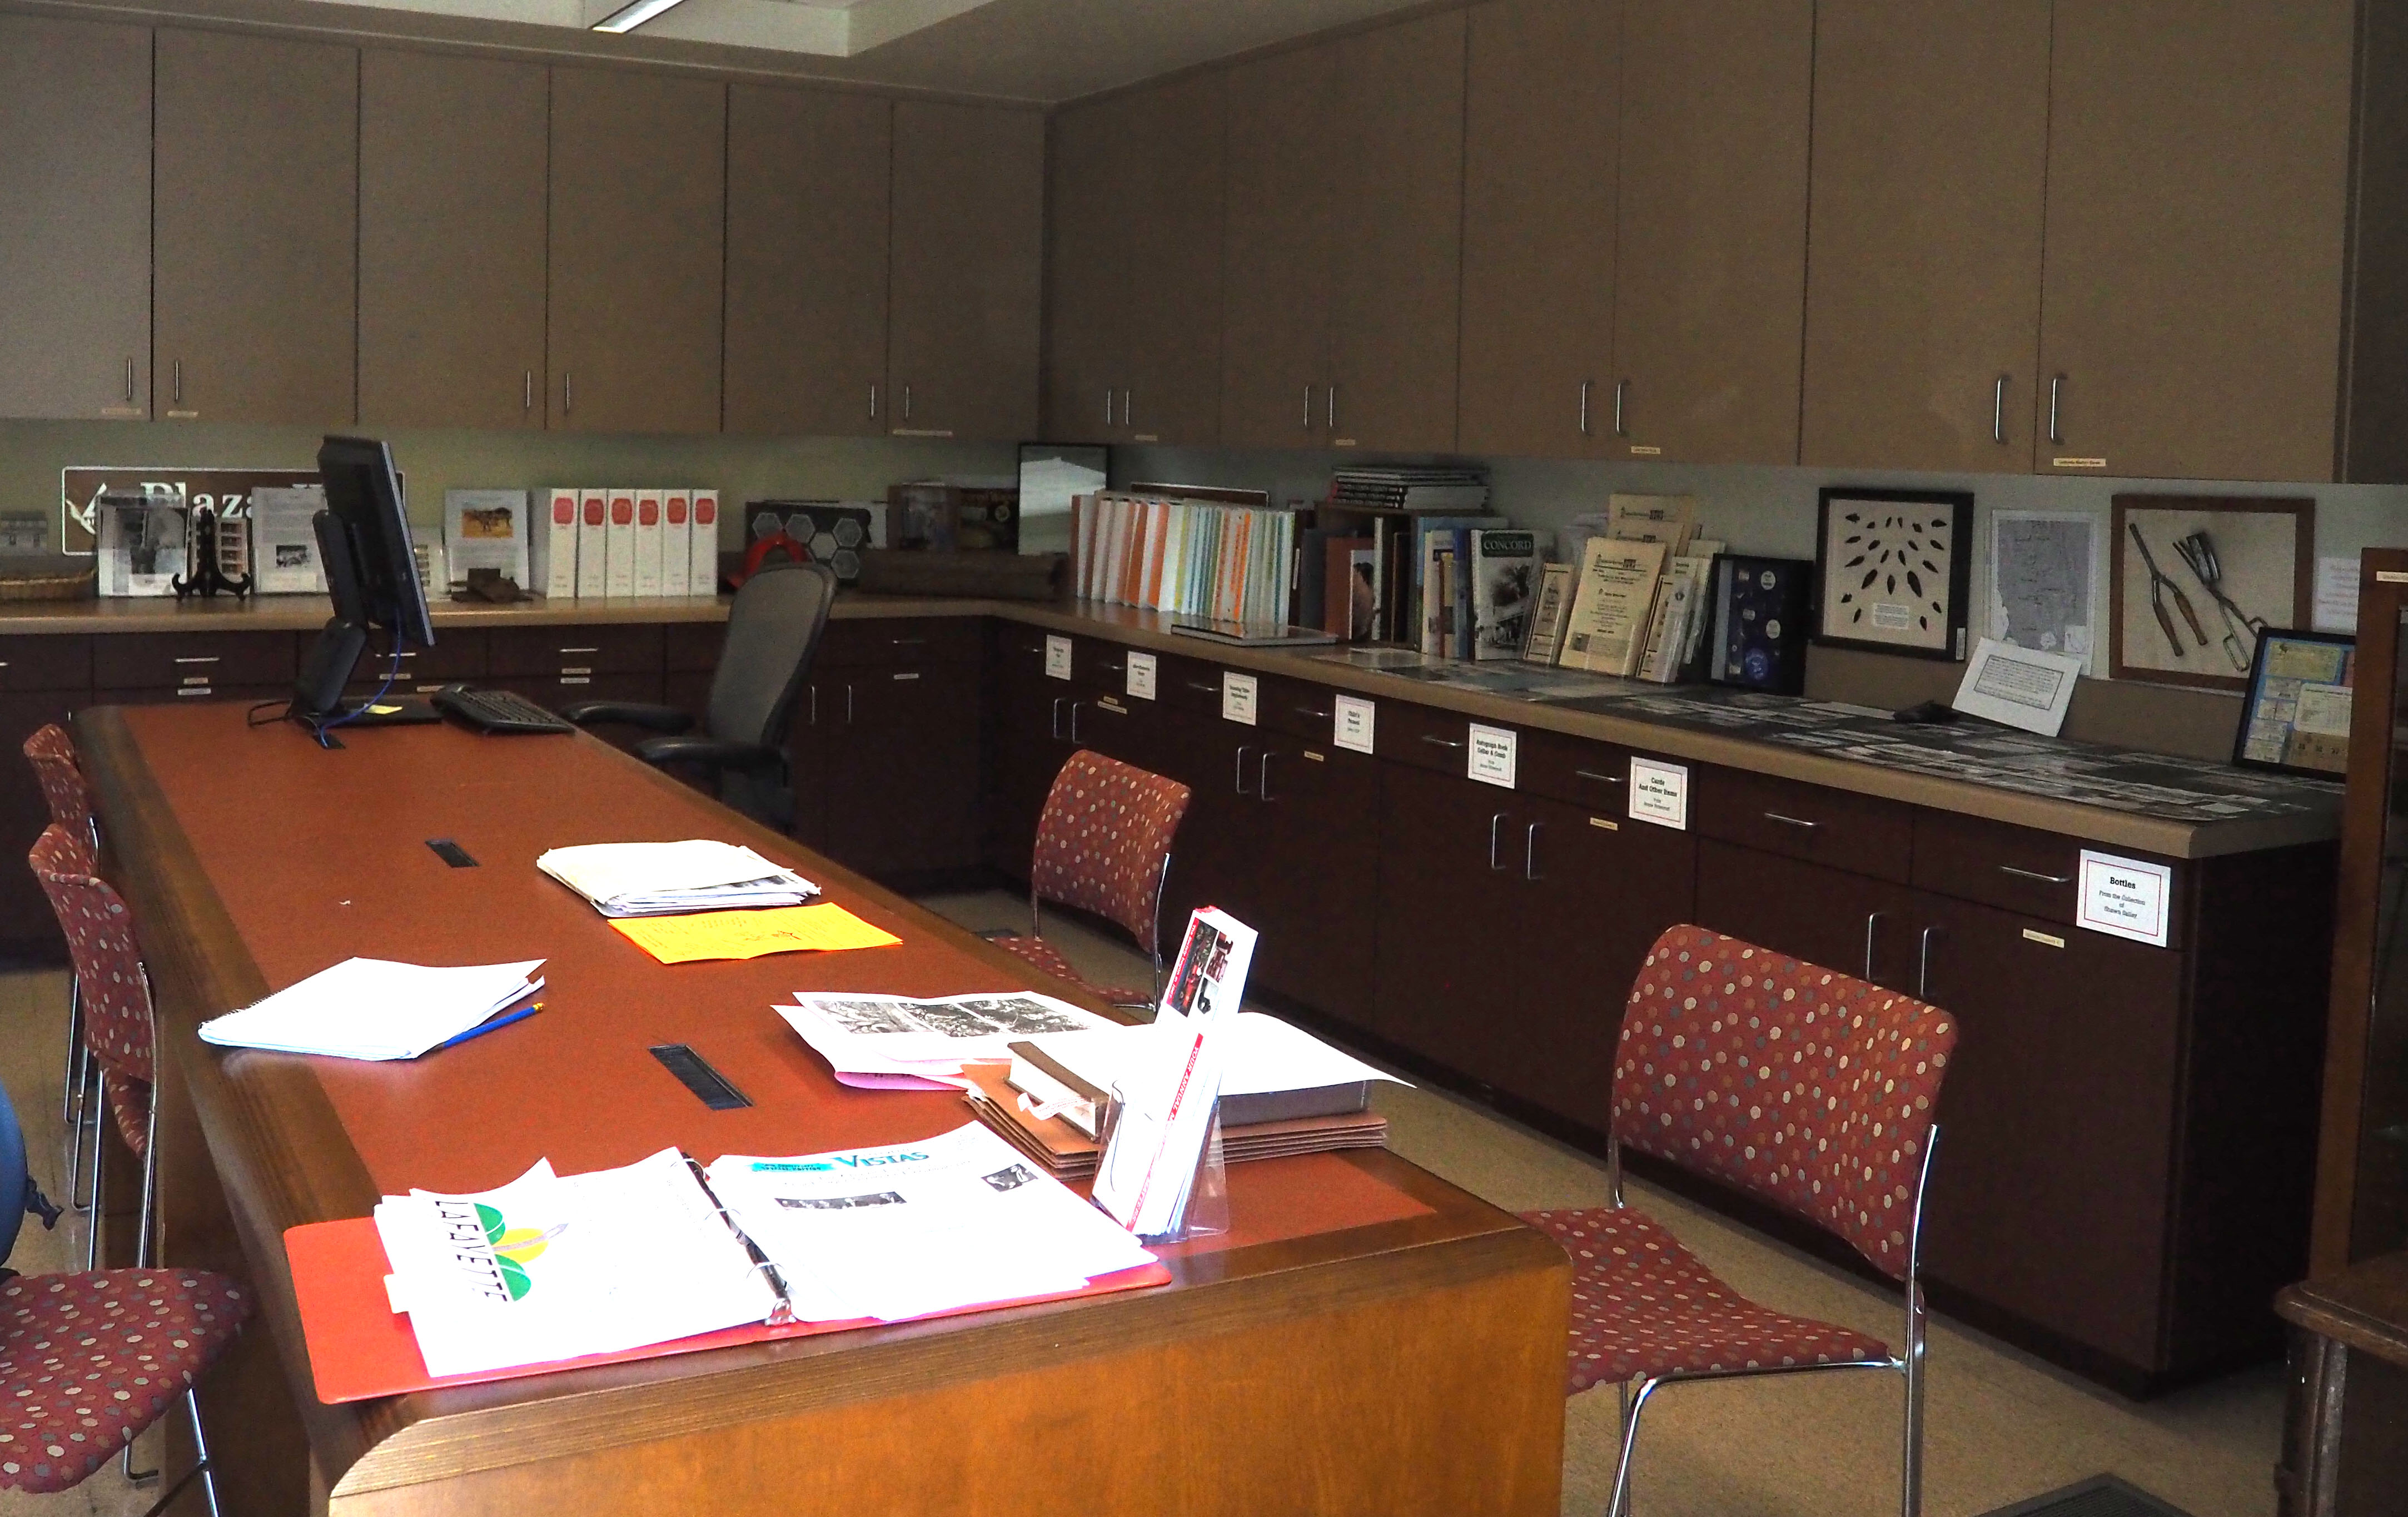 LHS Work Area and Books